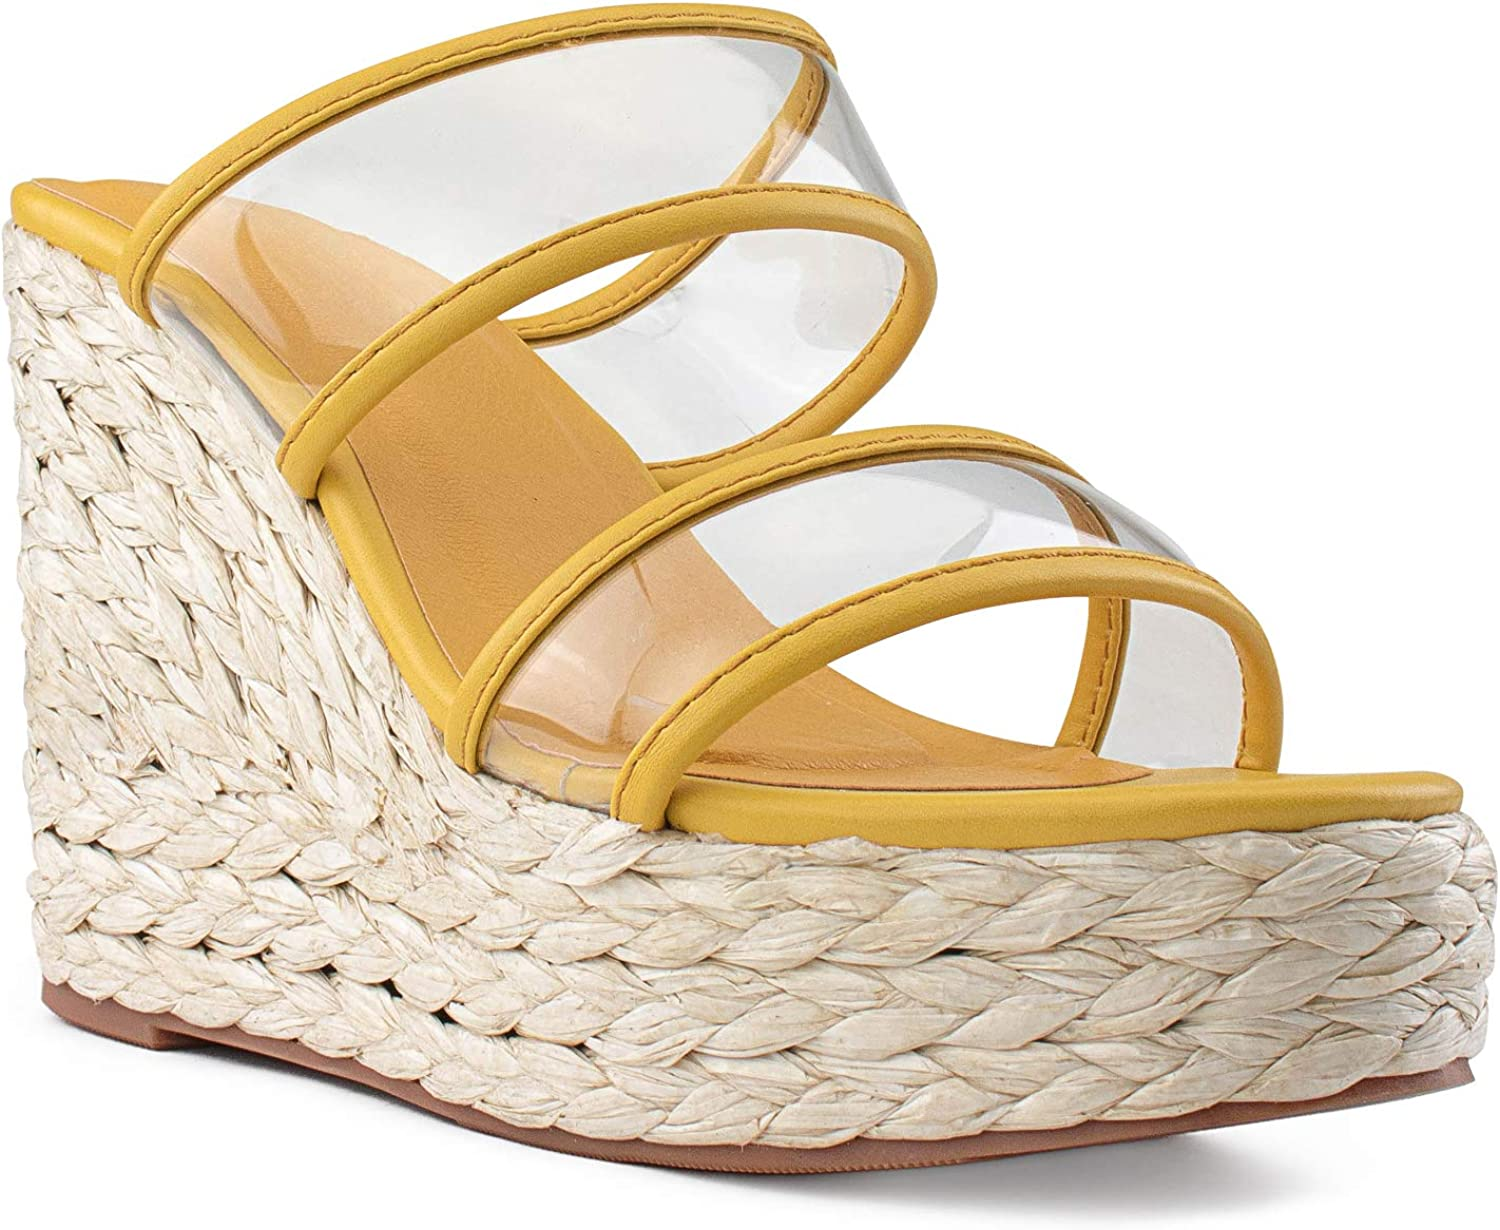 RF ROOM OF FASHION Large-scale sale Women's Clear Band Wedge Max 54% OFF Sandals